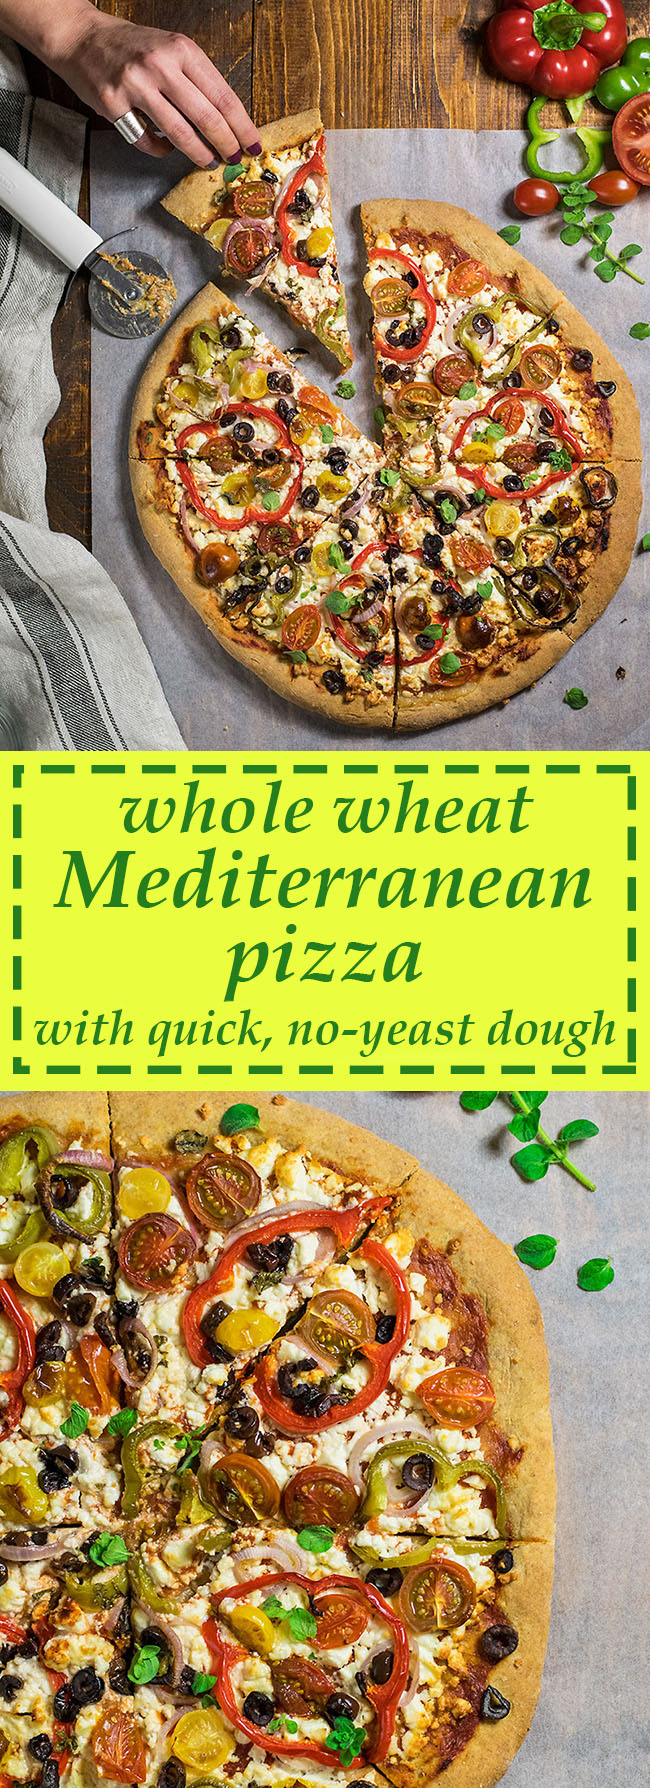 Whole wheat Mediterranean pizza 5